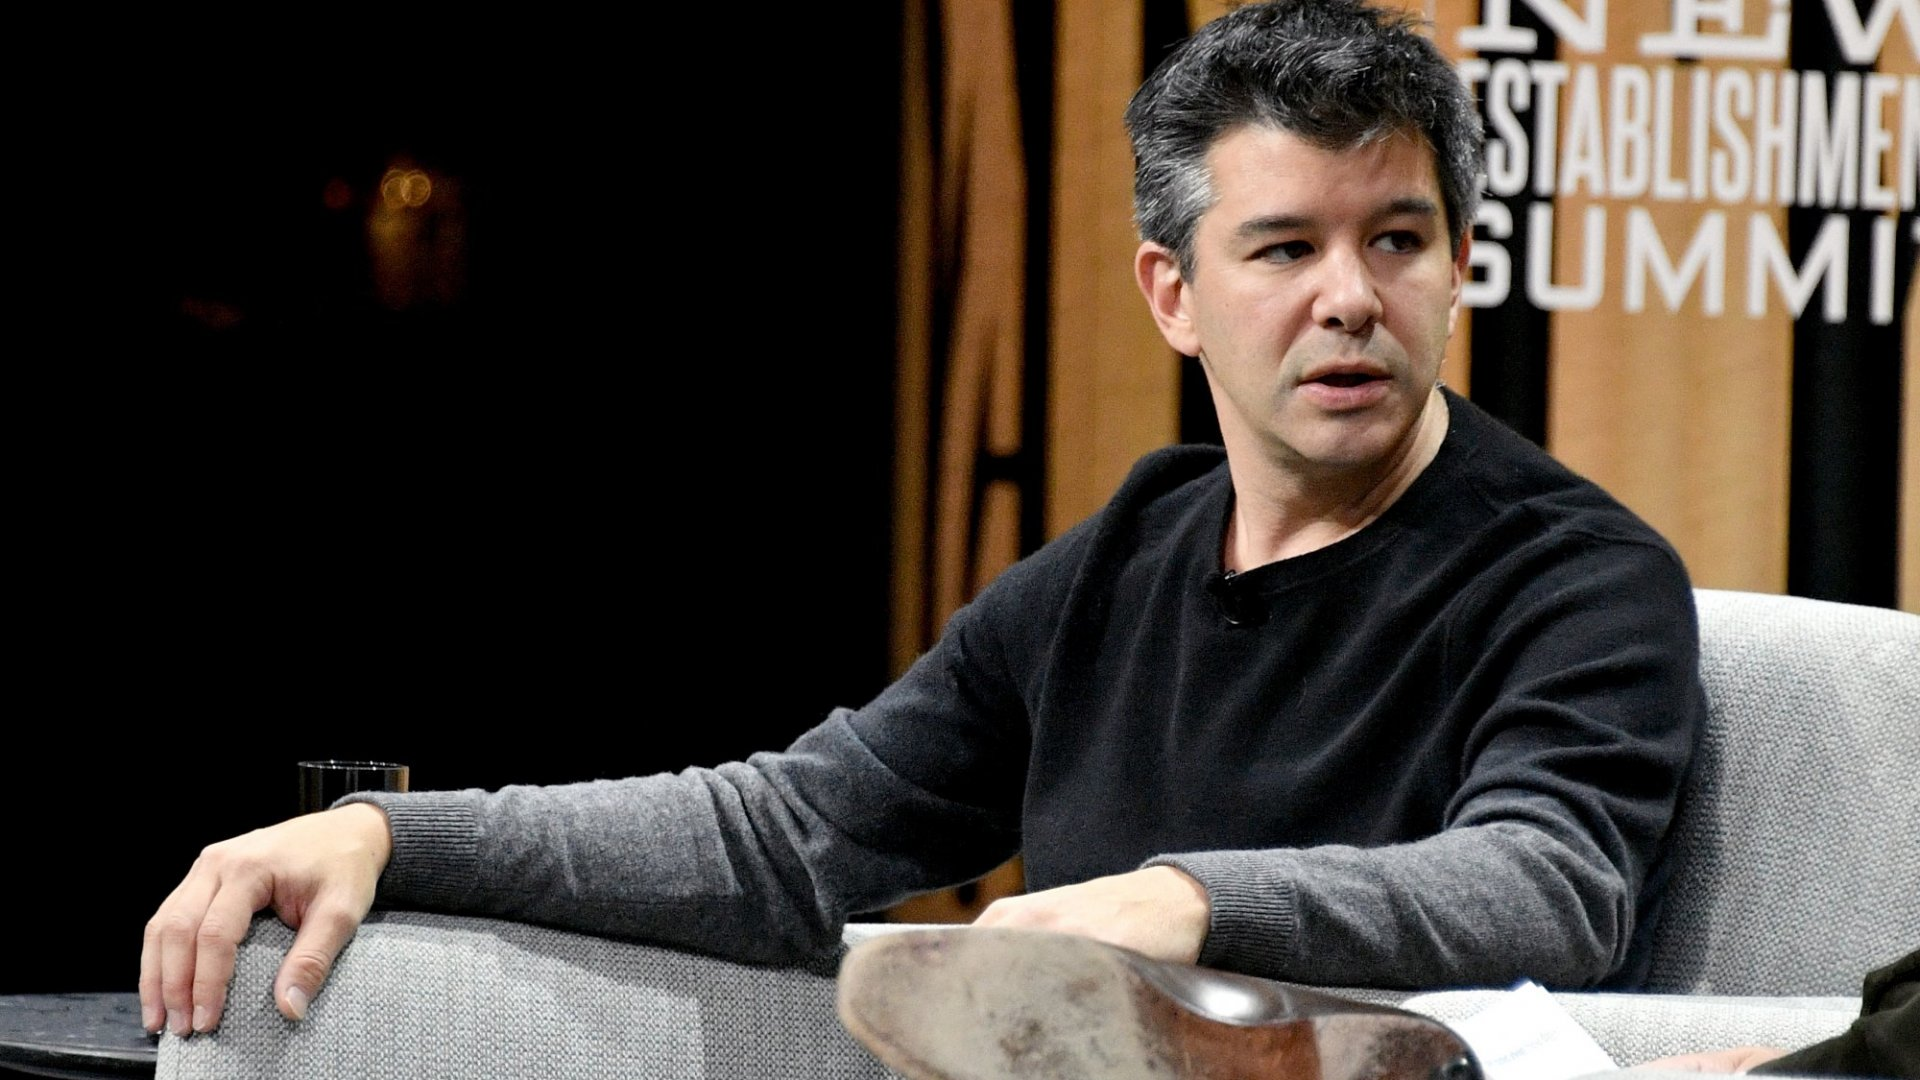 Co-Founder Travis Kalanick Could Lose His Influence on Uber After Board Meets Tomorrow